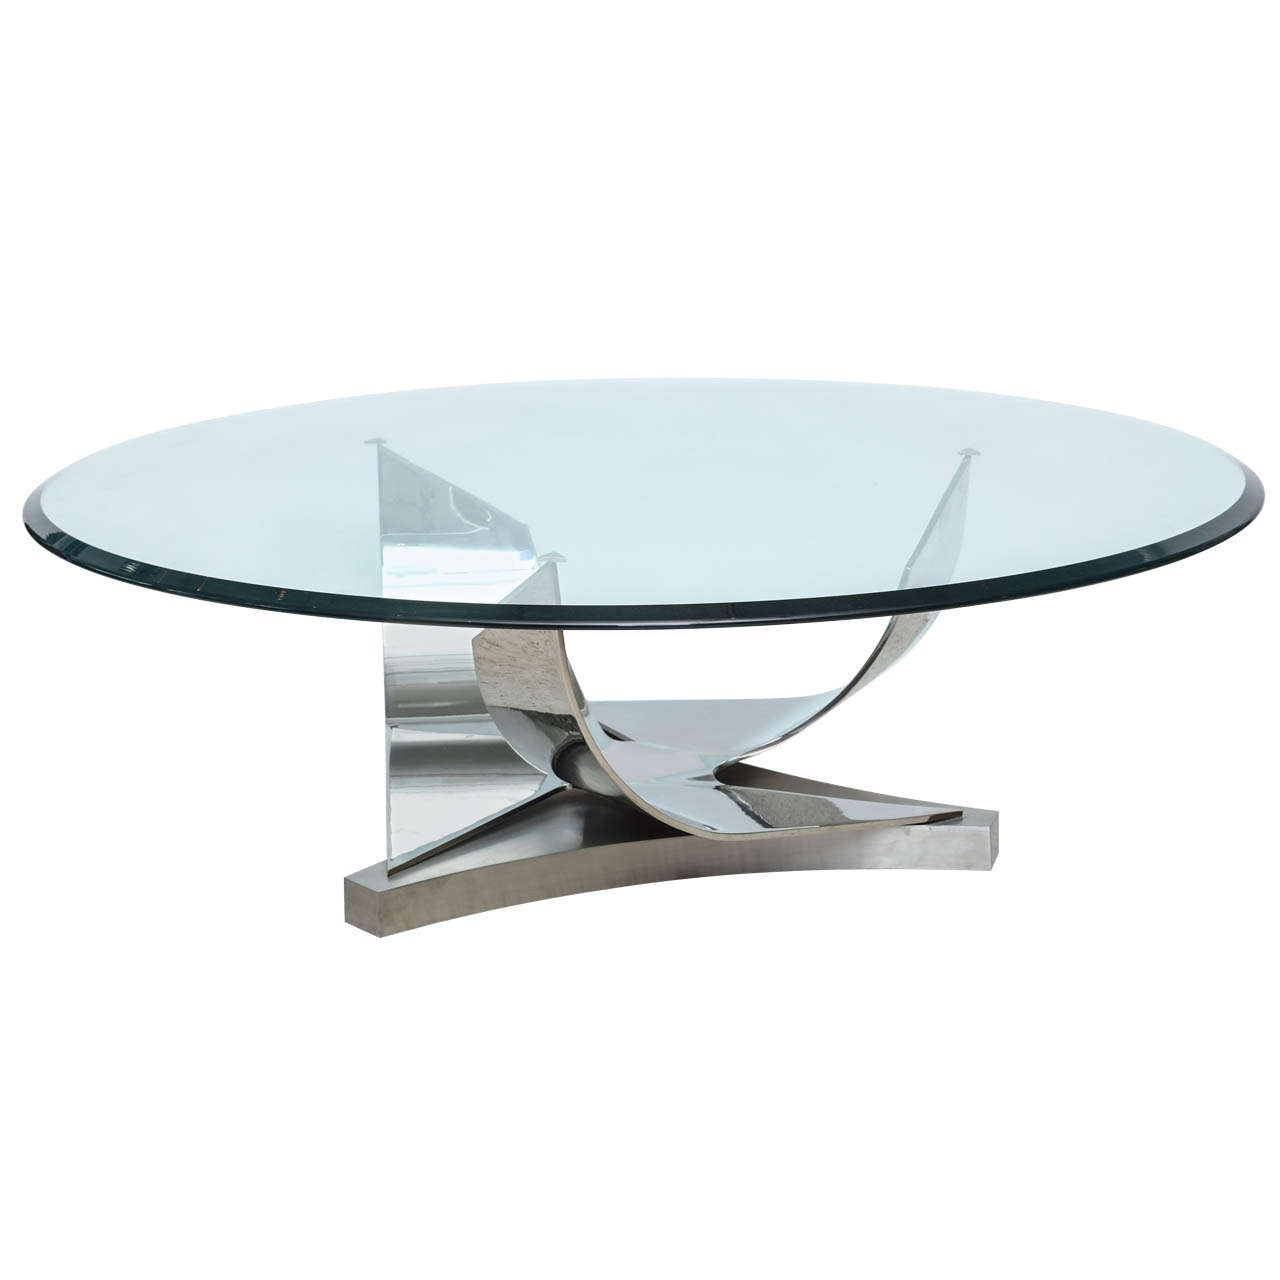 Ron Seff Polished Chrome And Stainless Steel Glass Top Low